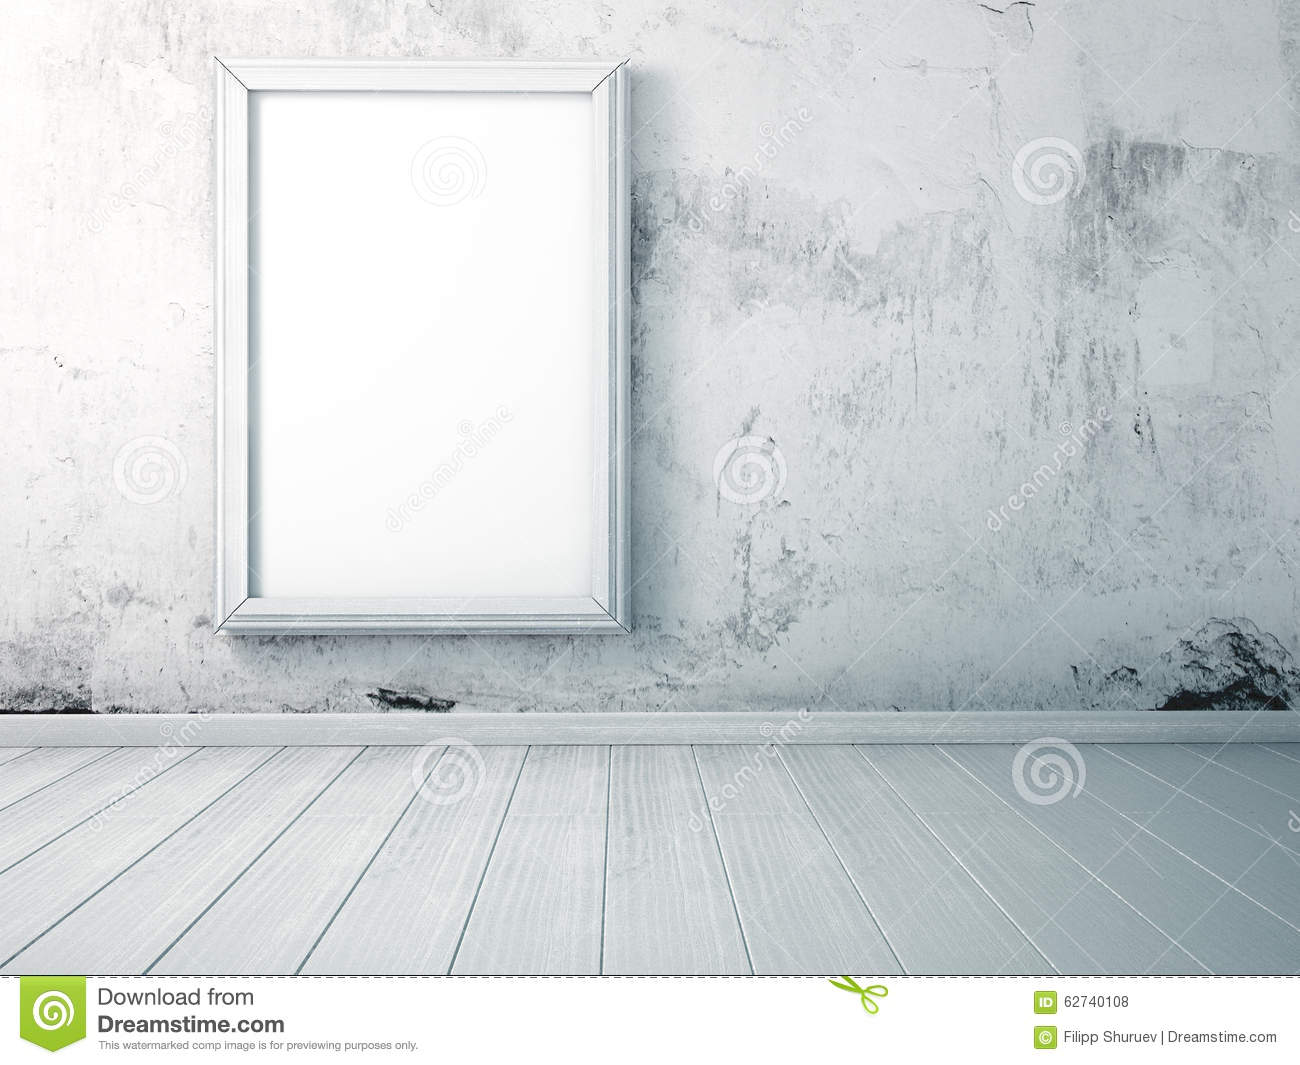 Mock Up Picture In The Frame Standing On A Wooden Floor In The